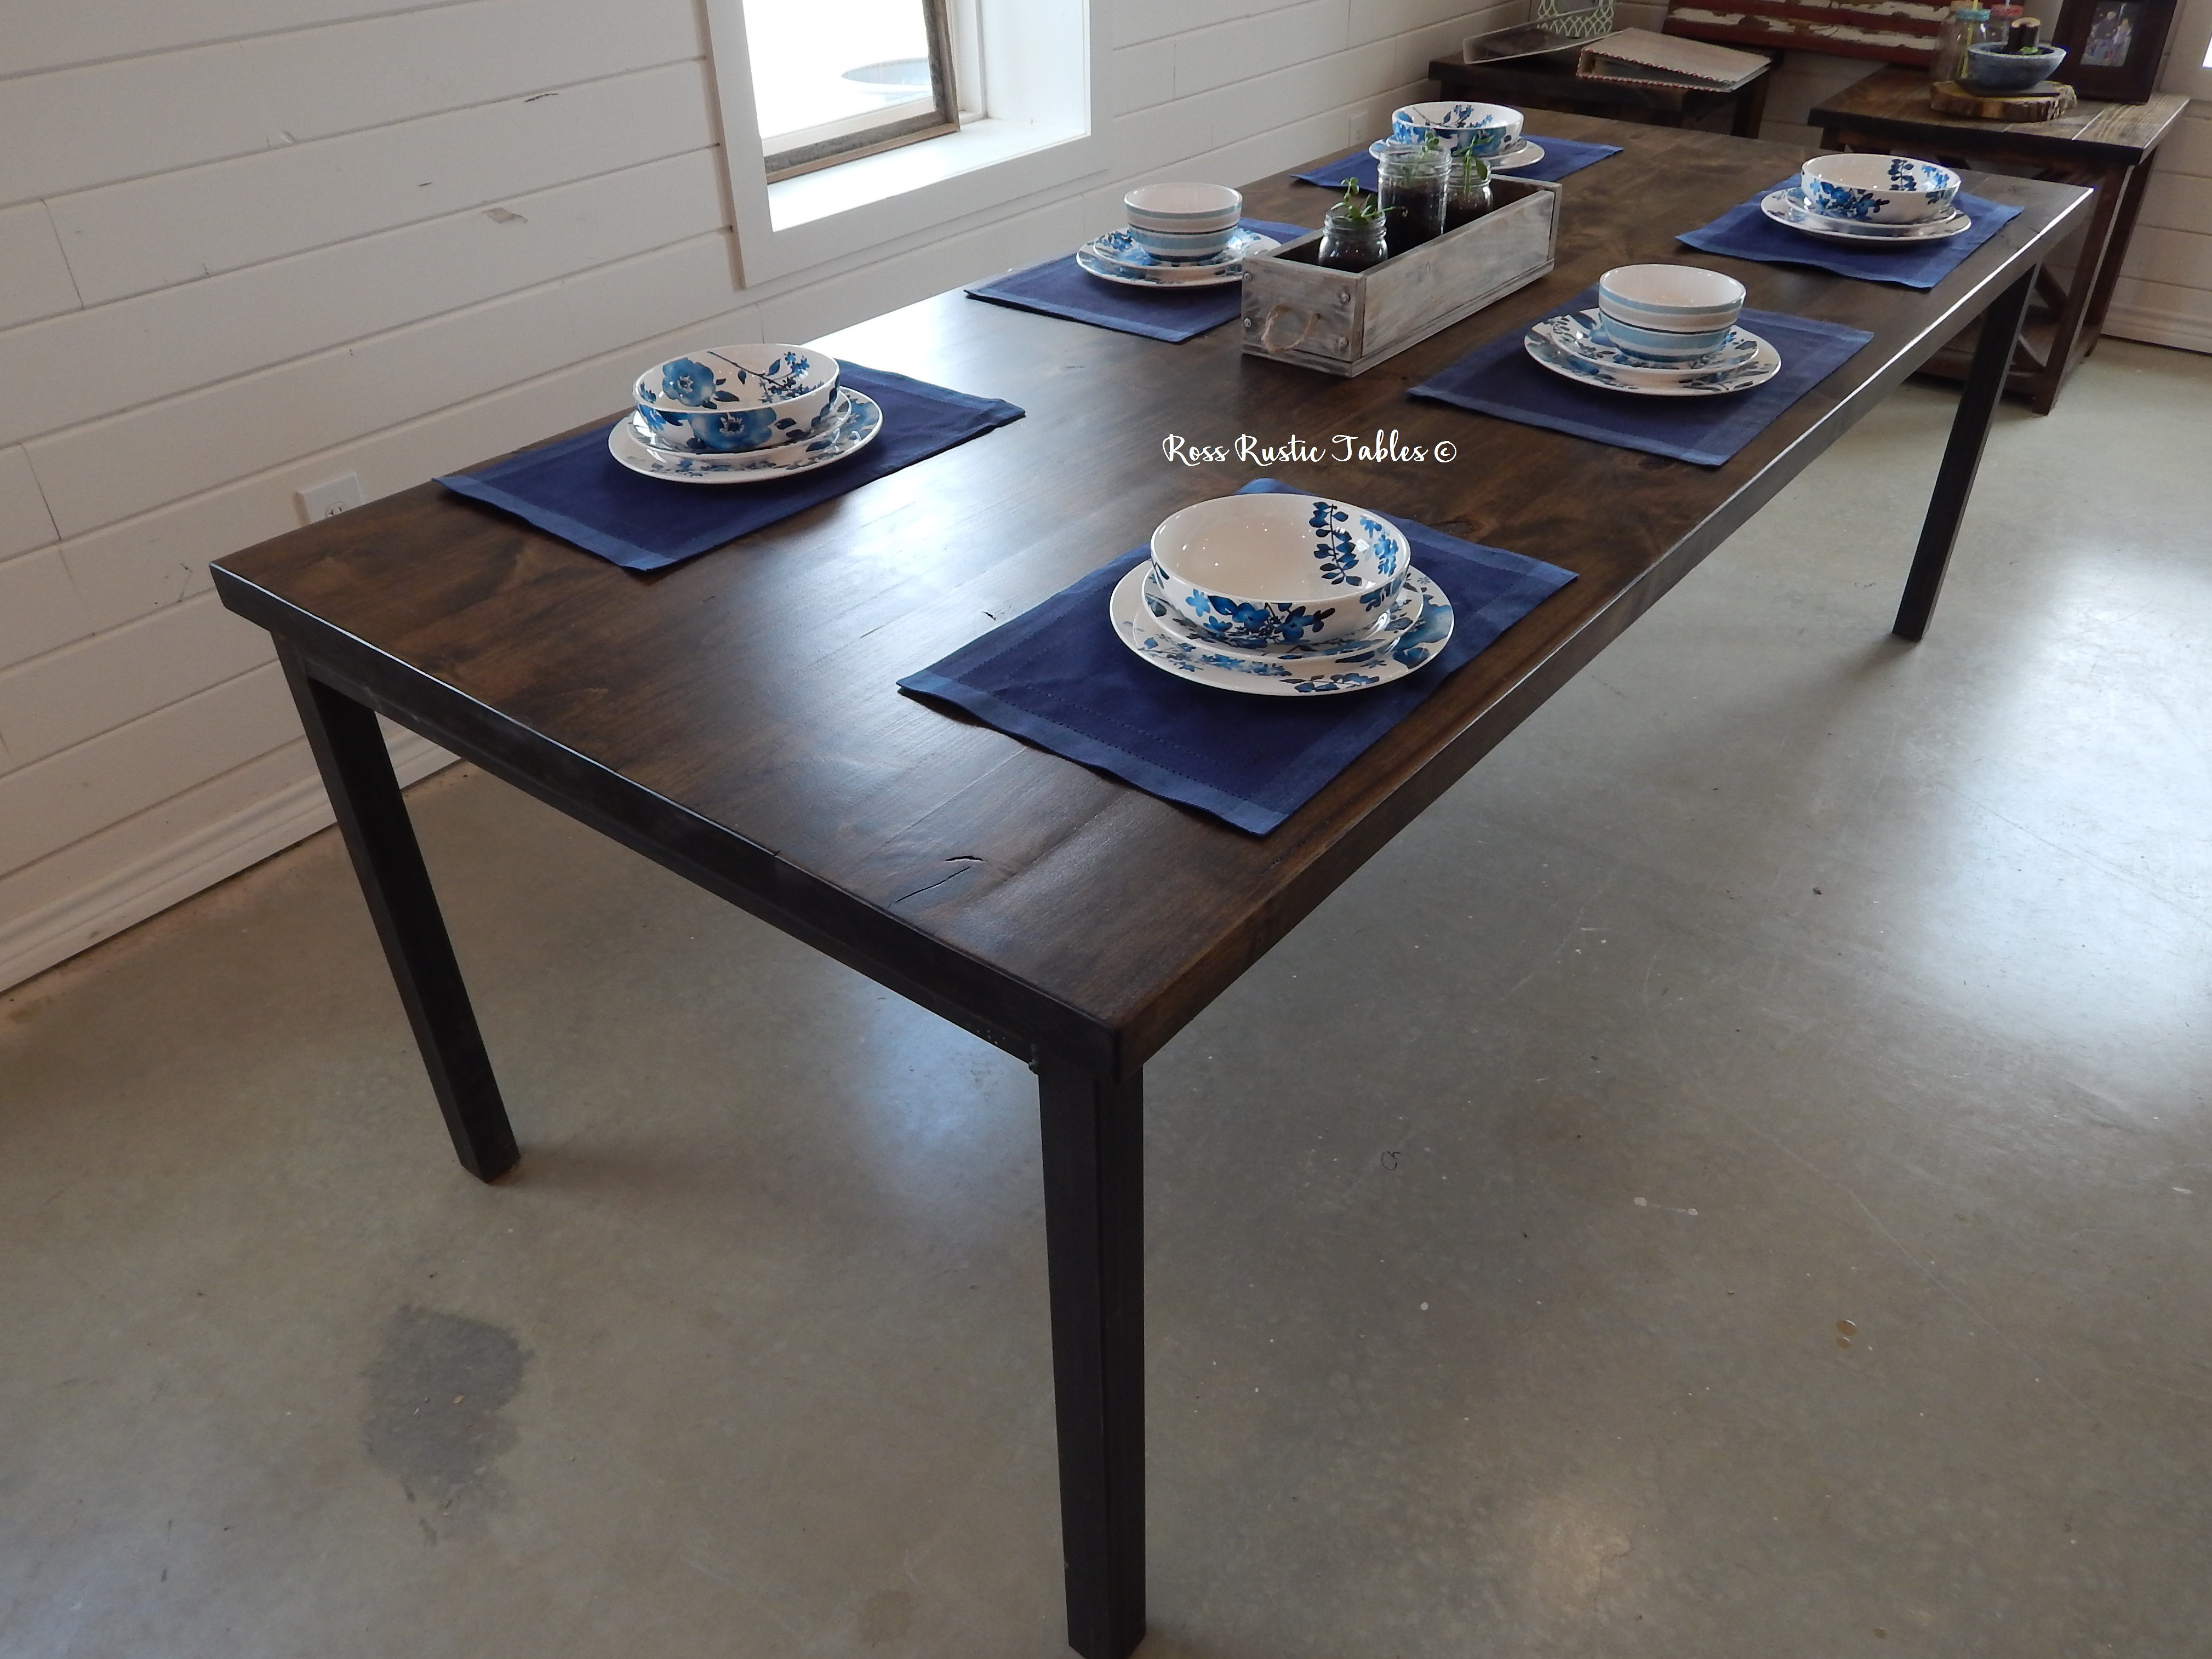 This Beautiful Solid Wood Farmhouse Table Is The Perfect Addition To Any  Home! This Dining Table Is The Definition Of Rustic. At Ross Rustic Tables  We Hand ...